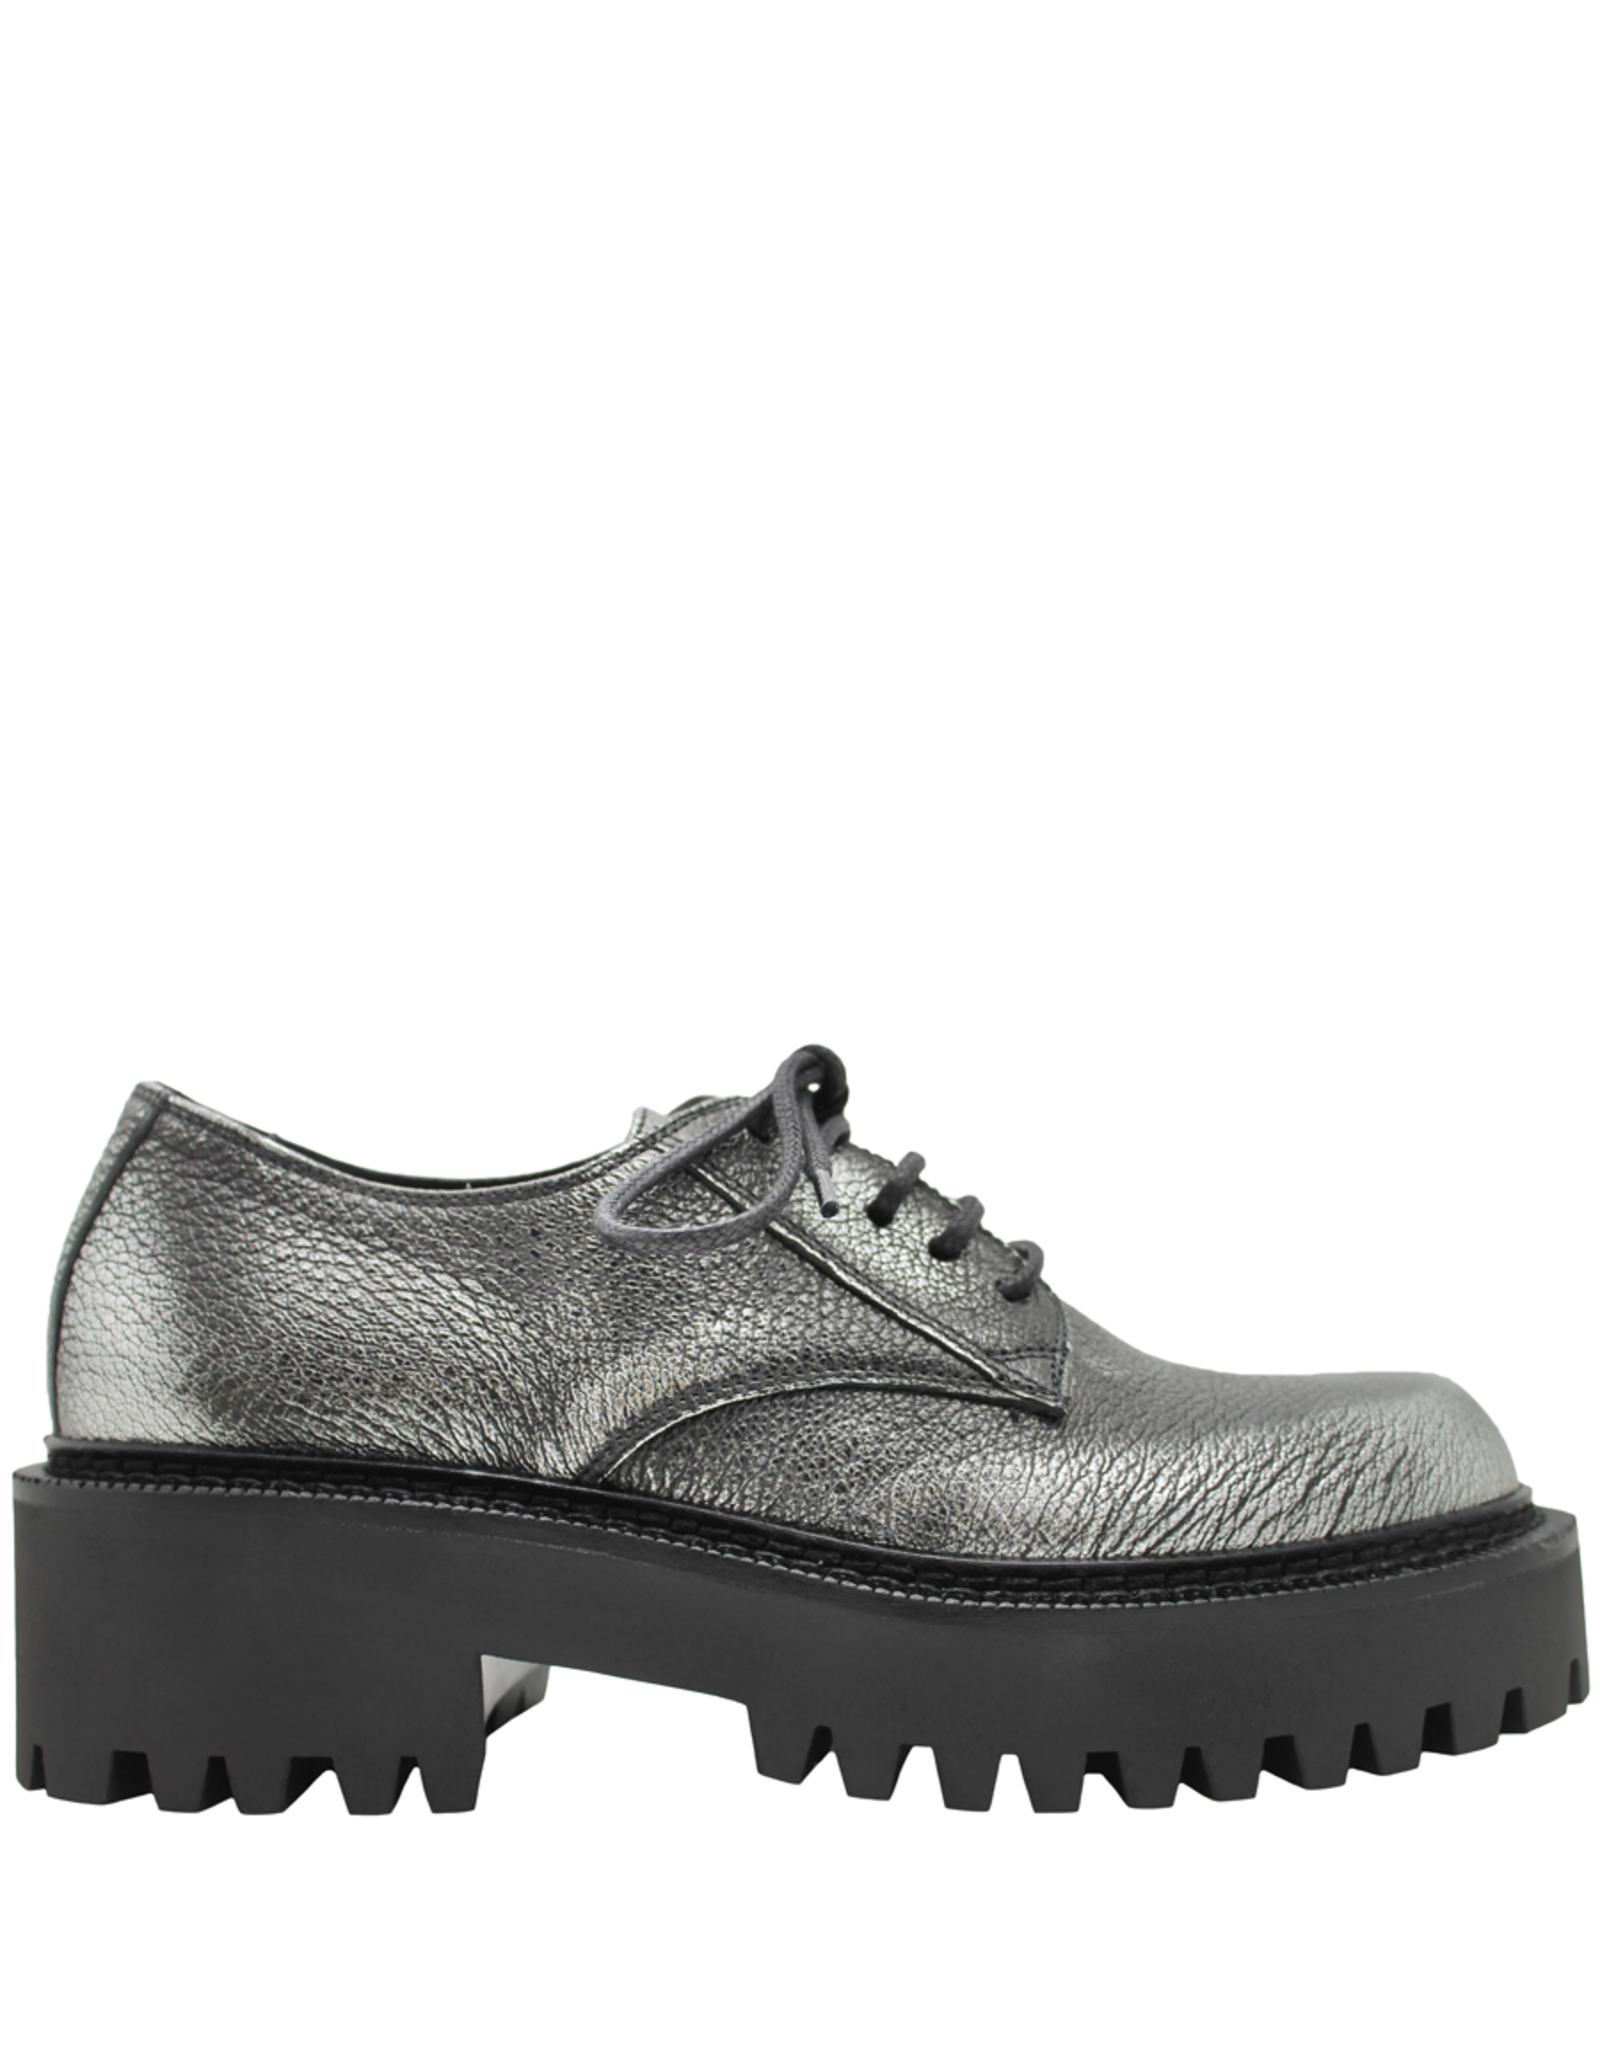 VicMatie VicMatie Silver Grain Leather Derby With Rubber Tread 5150